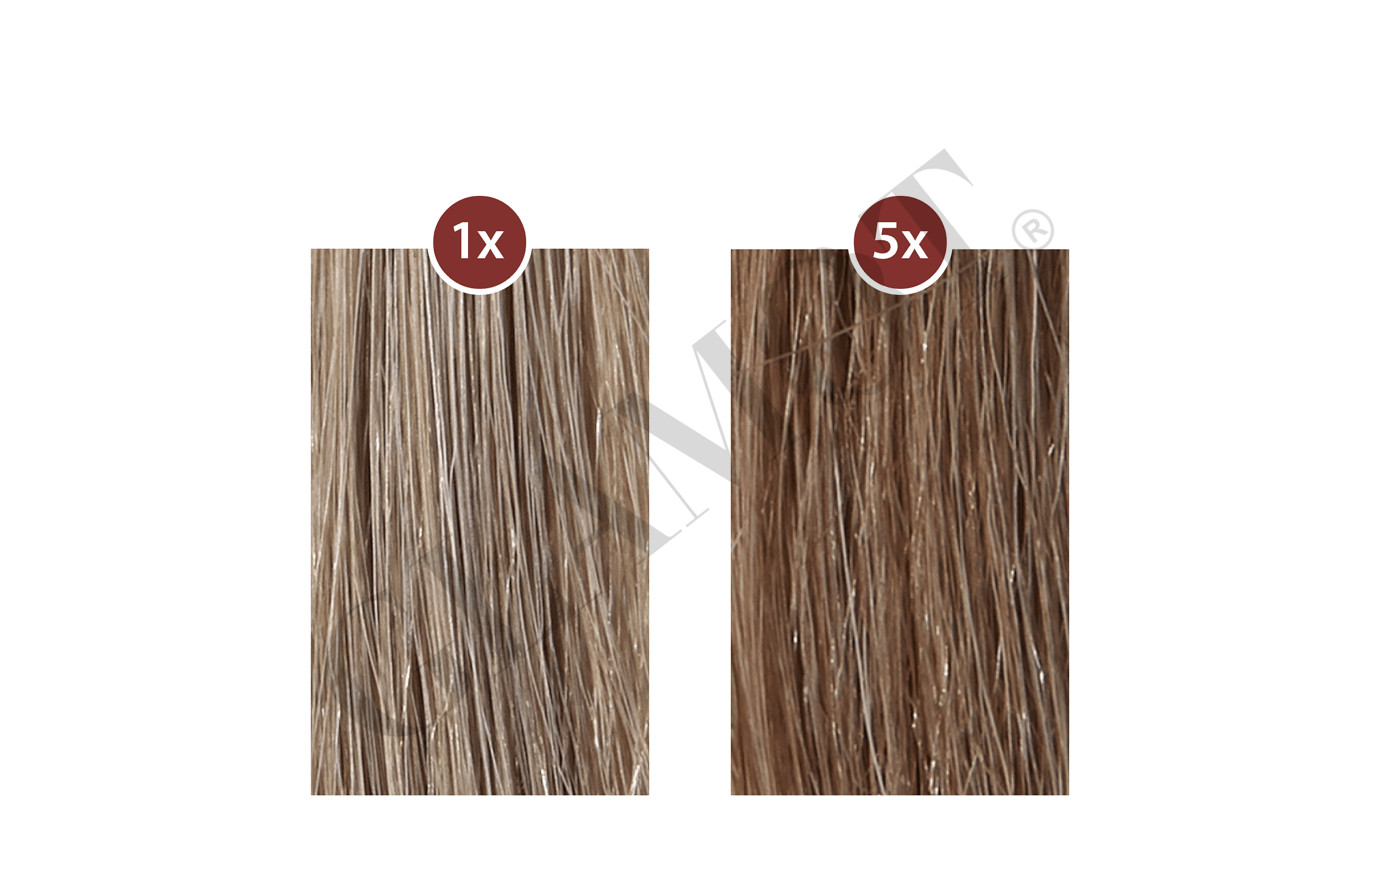 Plantur 39 Colour Brown Phyto Coffein Shampoo Glamot Com